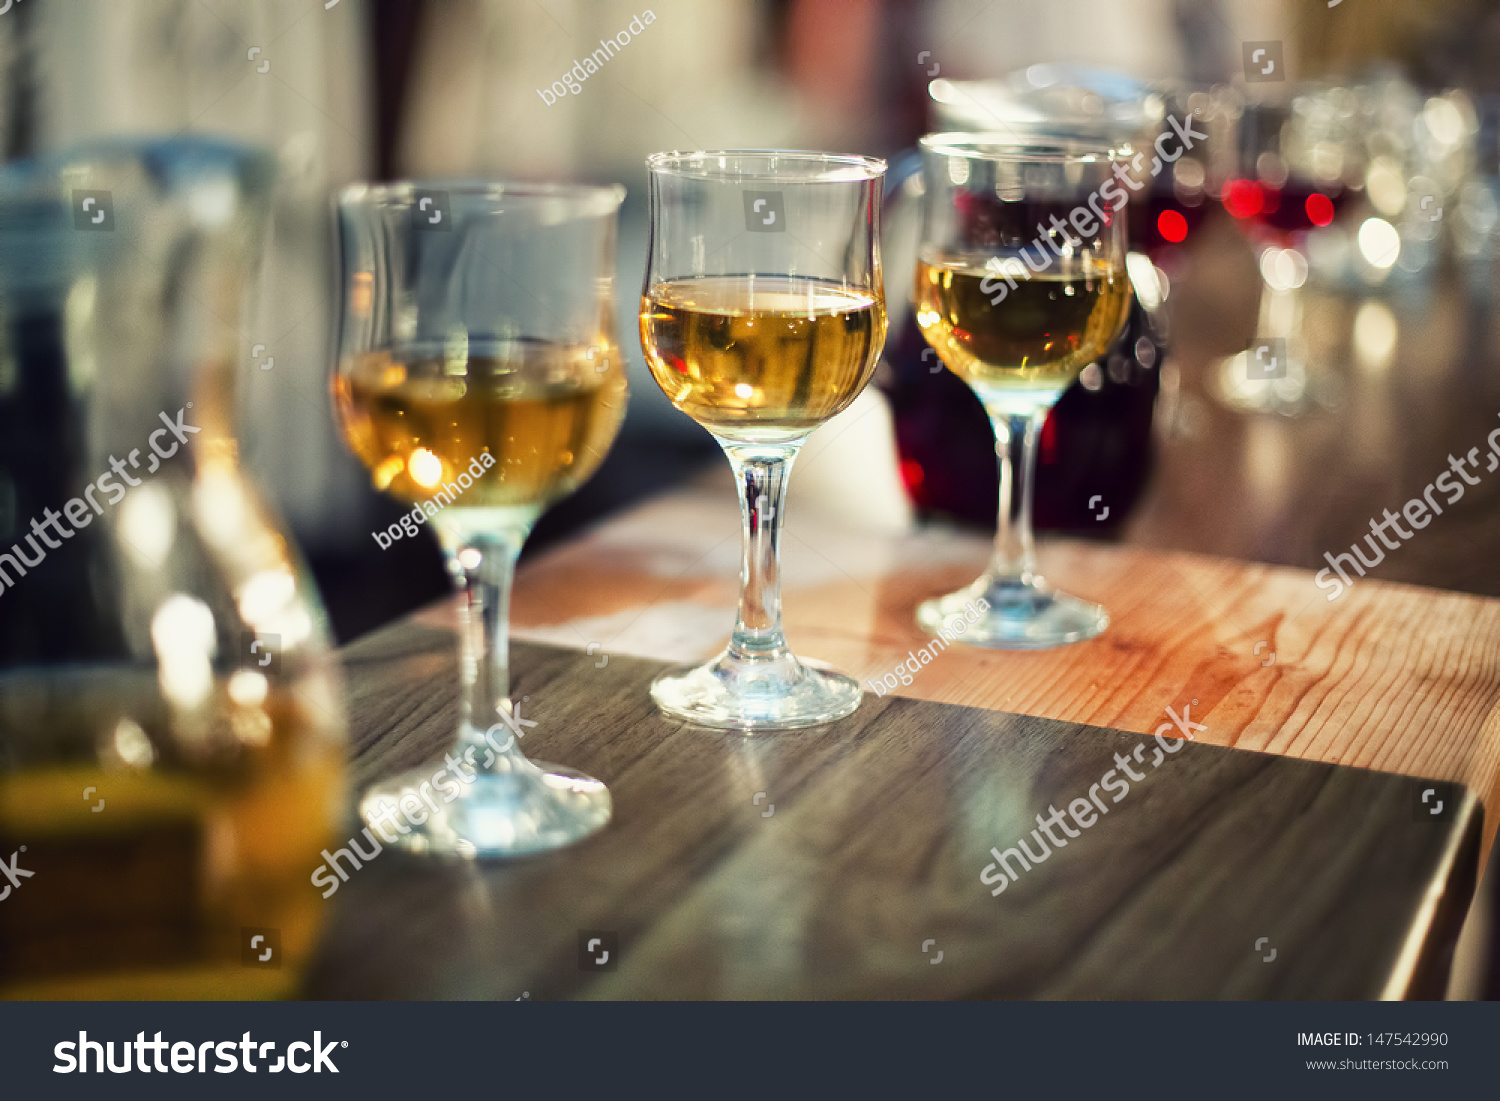 various types of exquisite wine in glasses at dress cocktail party